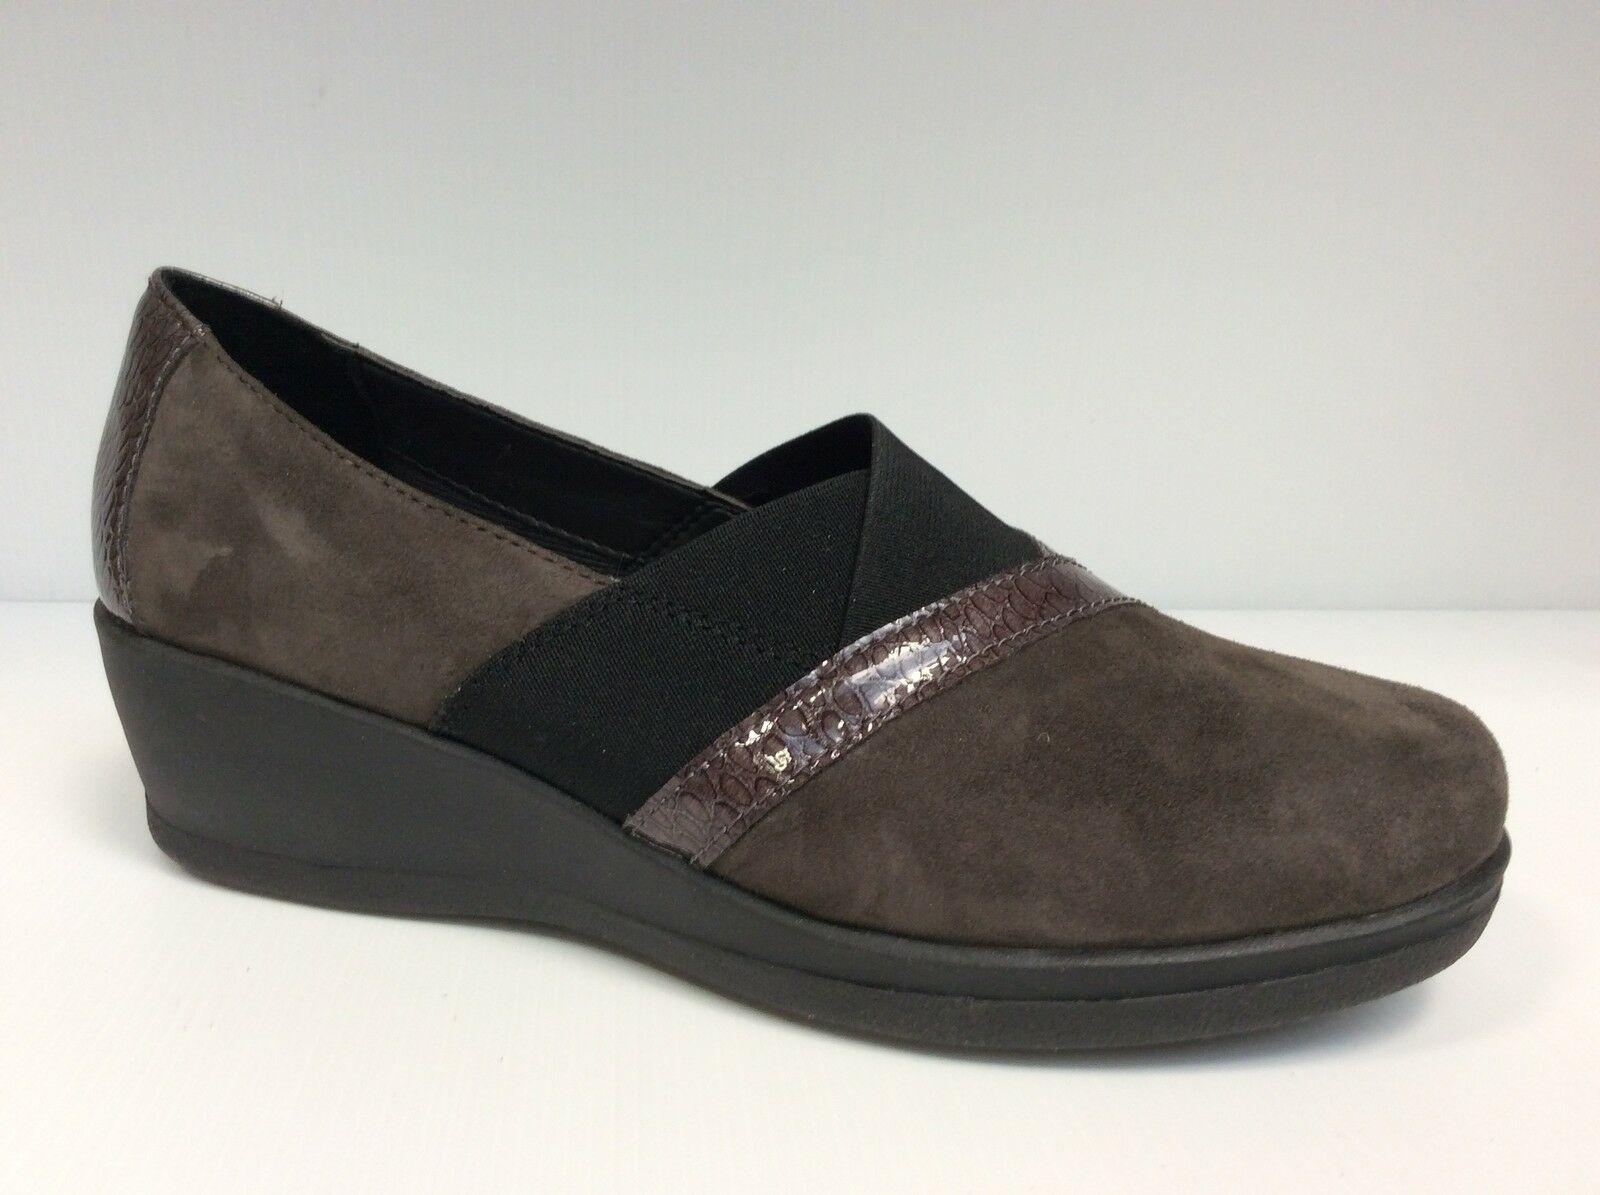 Grunland chaussure SC2328 suede taupe hizammohemed comfortable aut inv